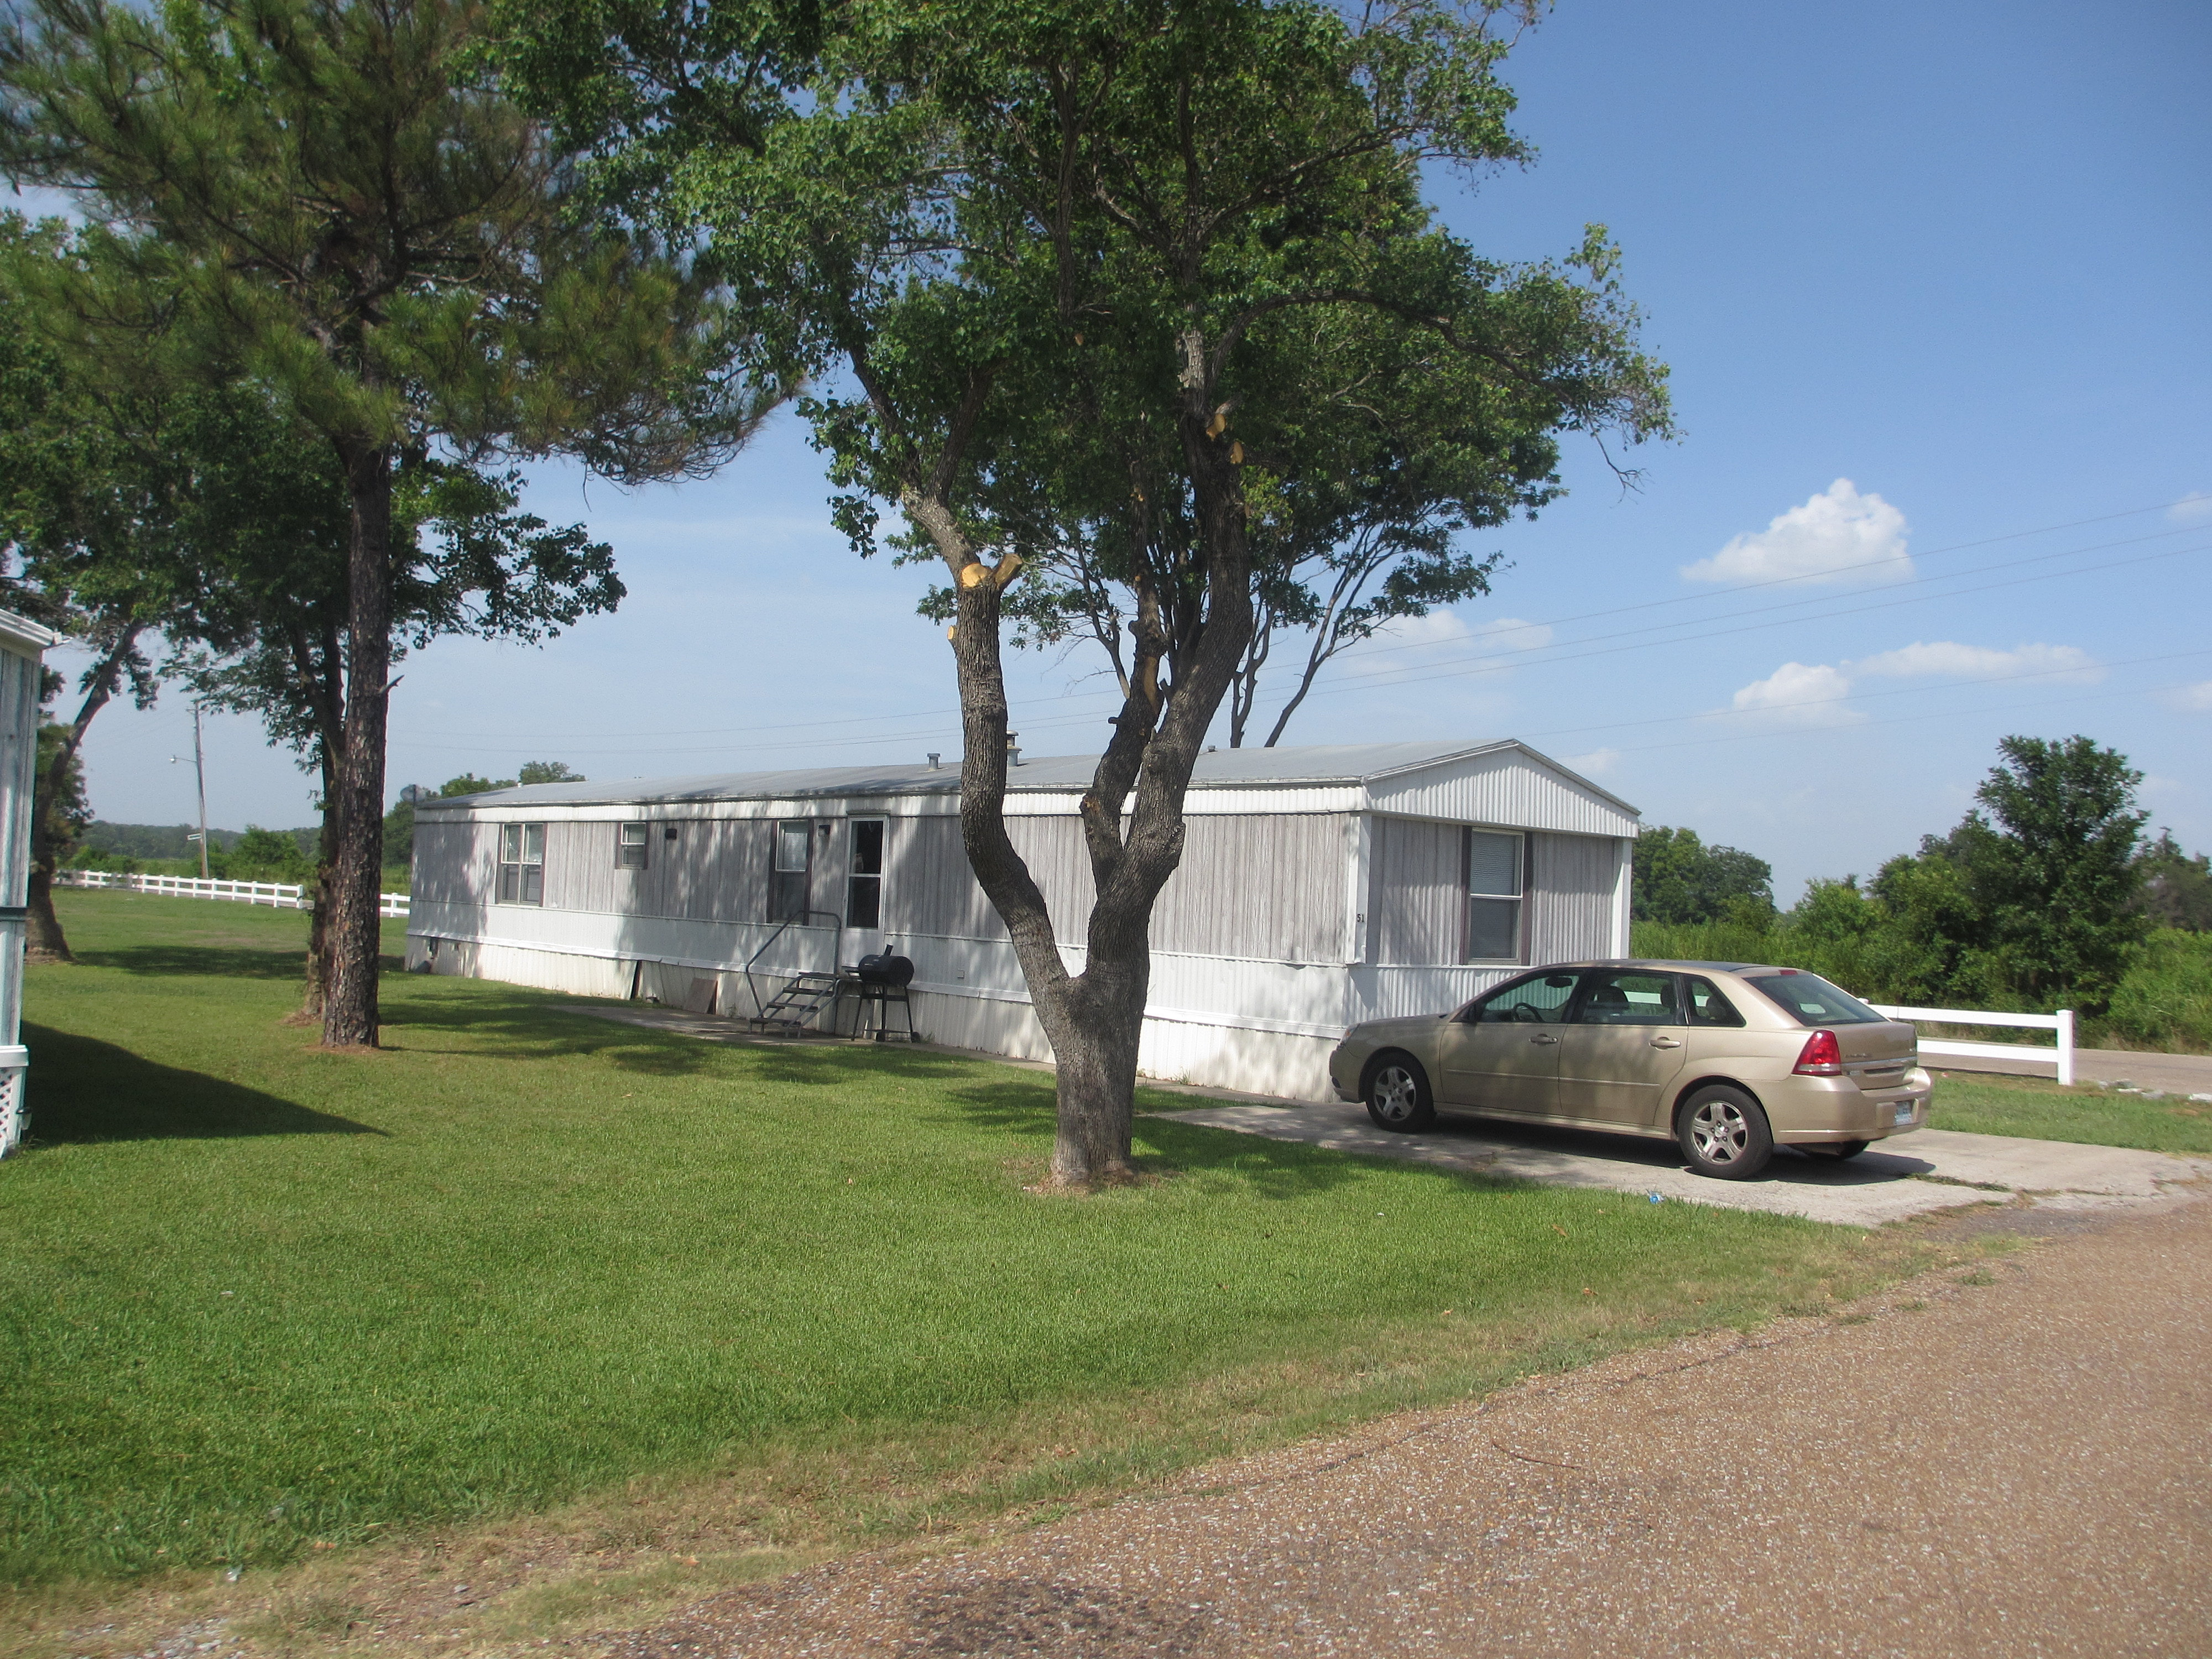 Best Houses for Rent. Delta Village Rated Best 5 Star Mobile Home Park In The MS Delta